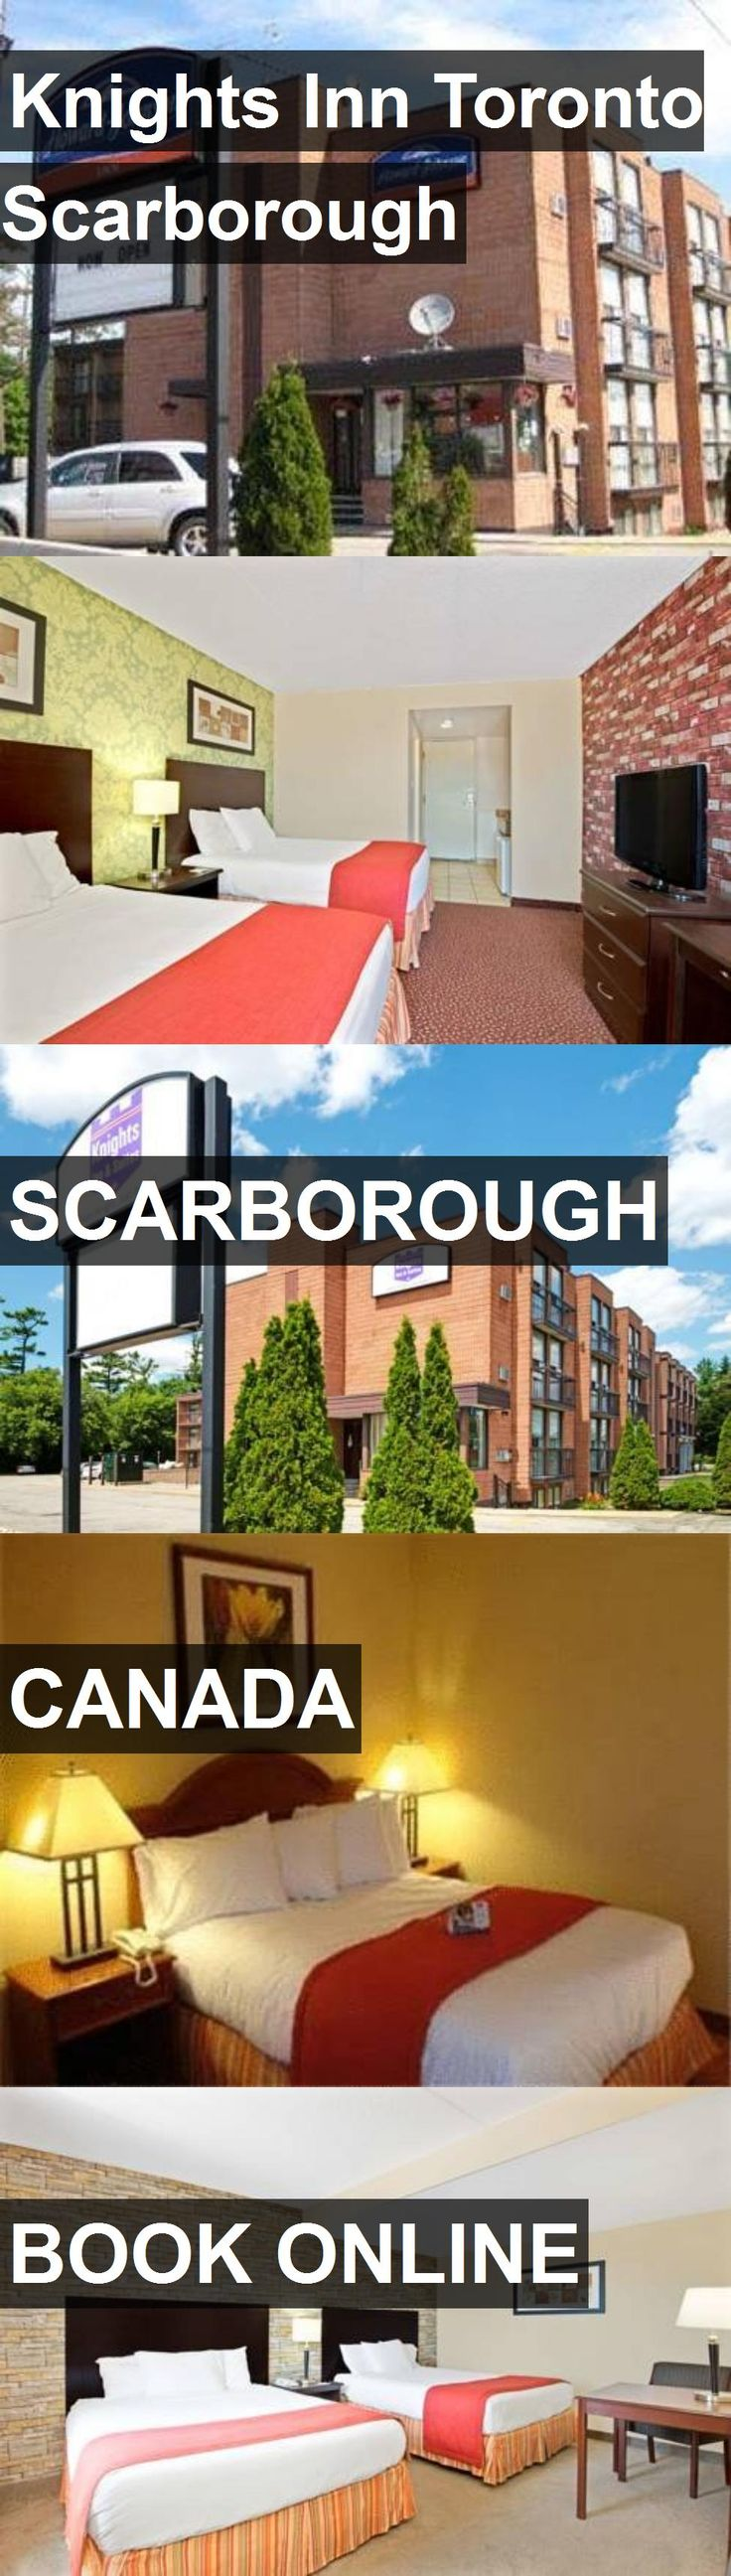 Hotel Knights Inn Toronto Scarborough in Scarborough, Canada. For more information, photos, reviews and best prices please follow the link. #Canada #Scarborough #travel #vacation #hotel